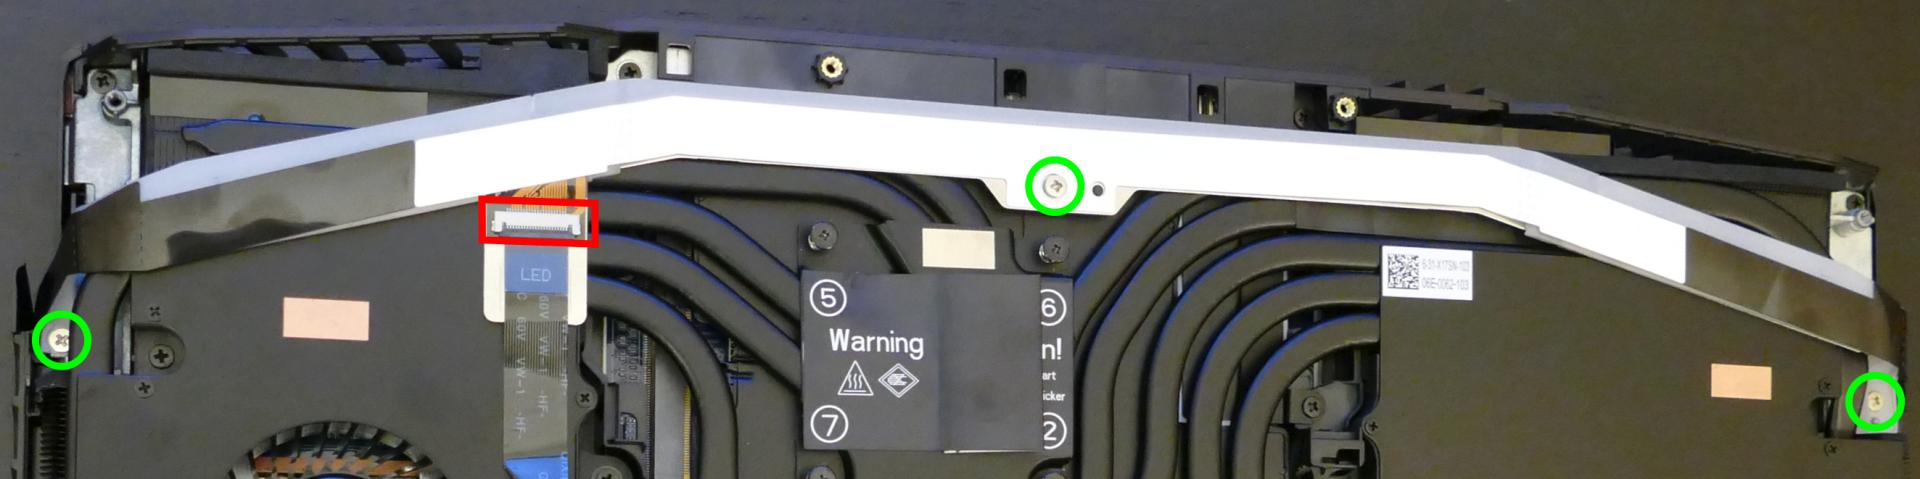 LED bar screws and connector